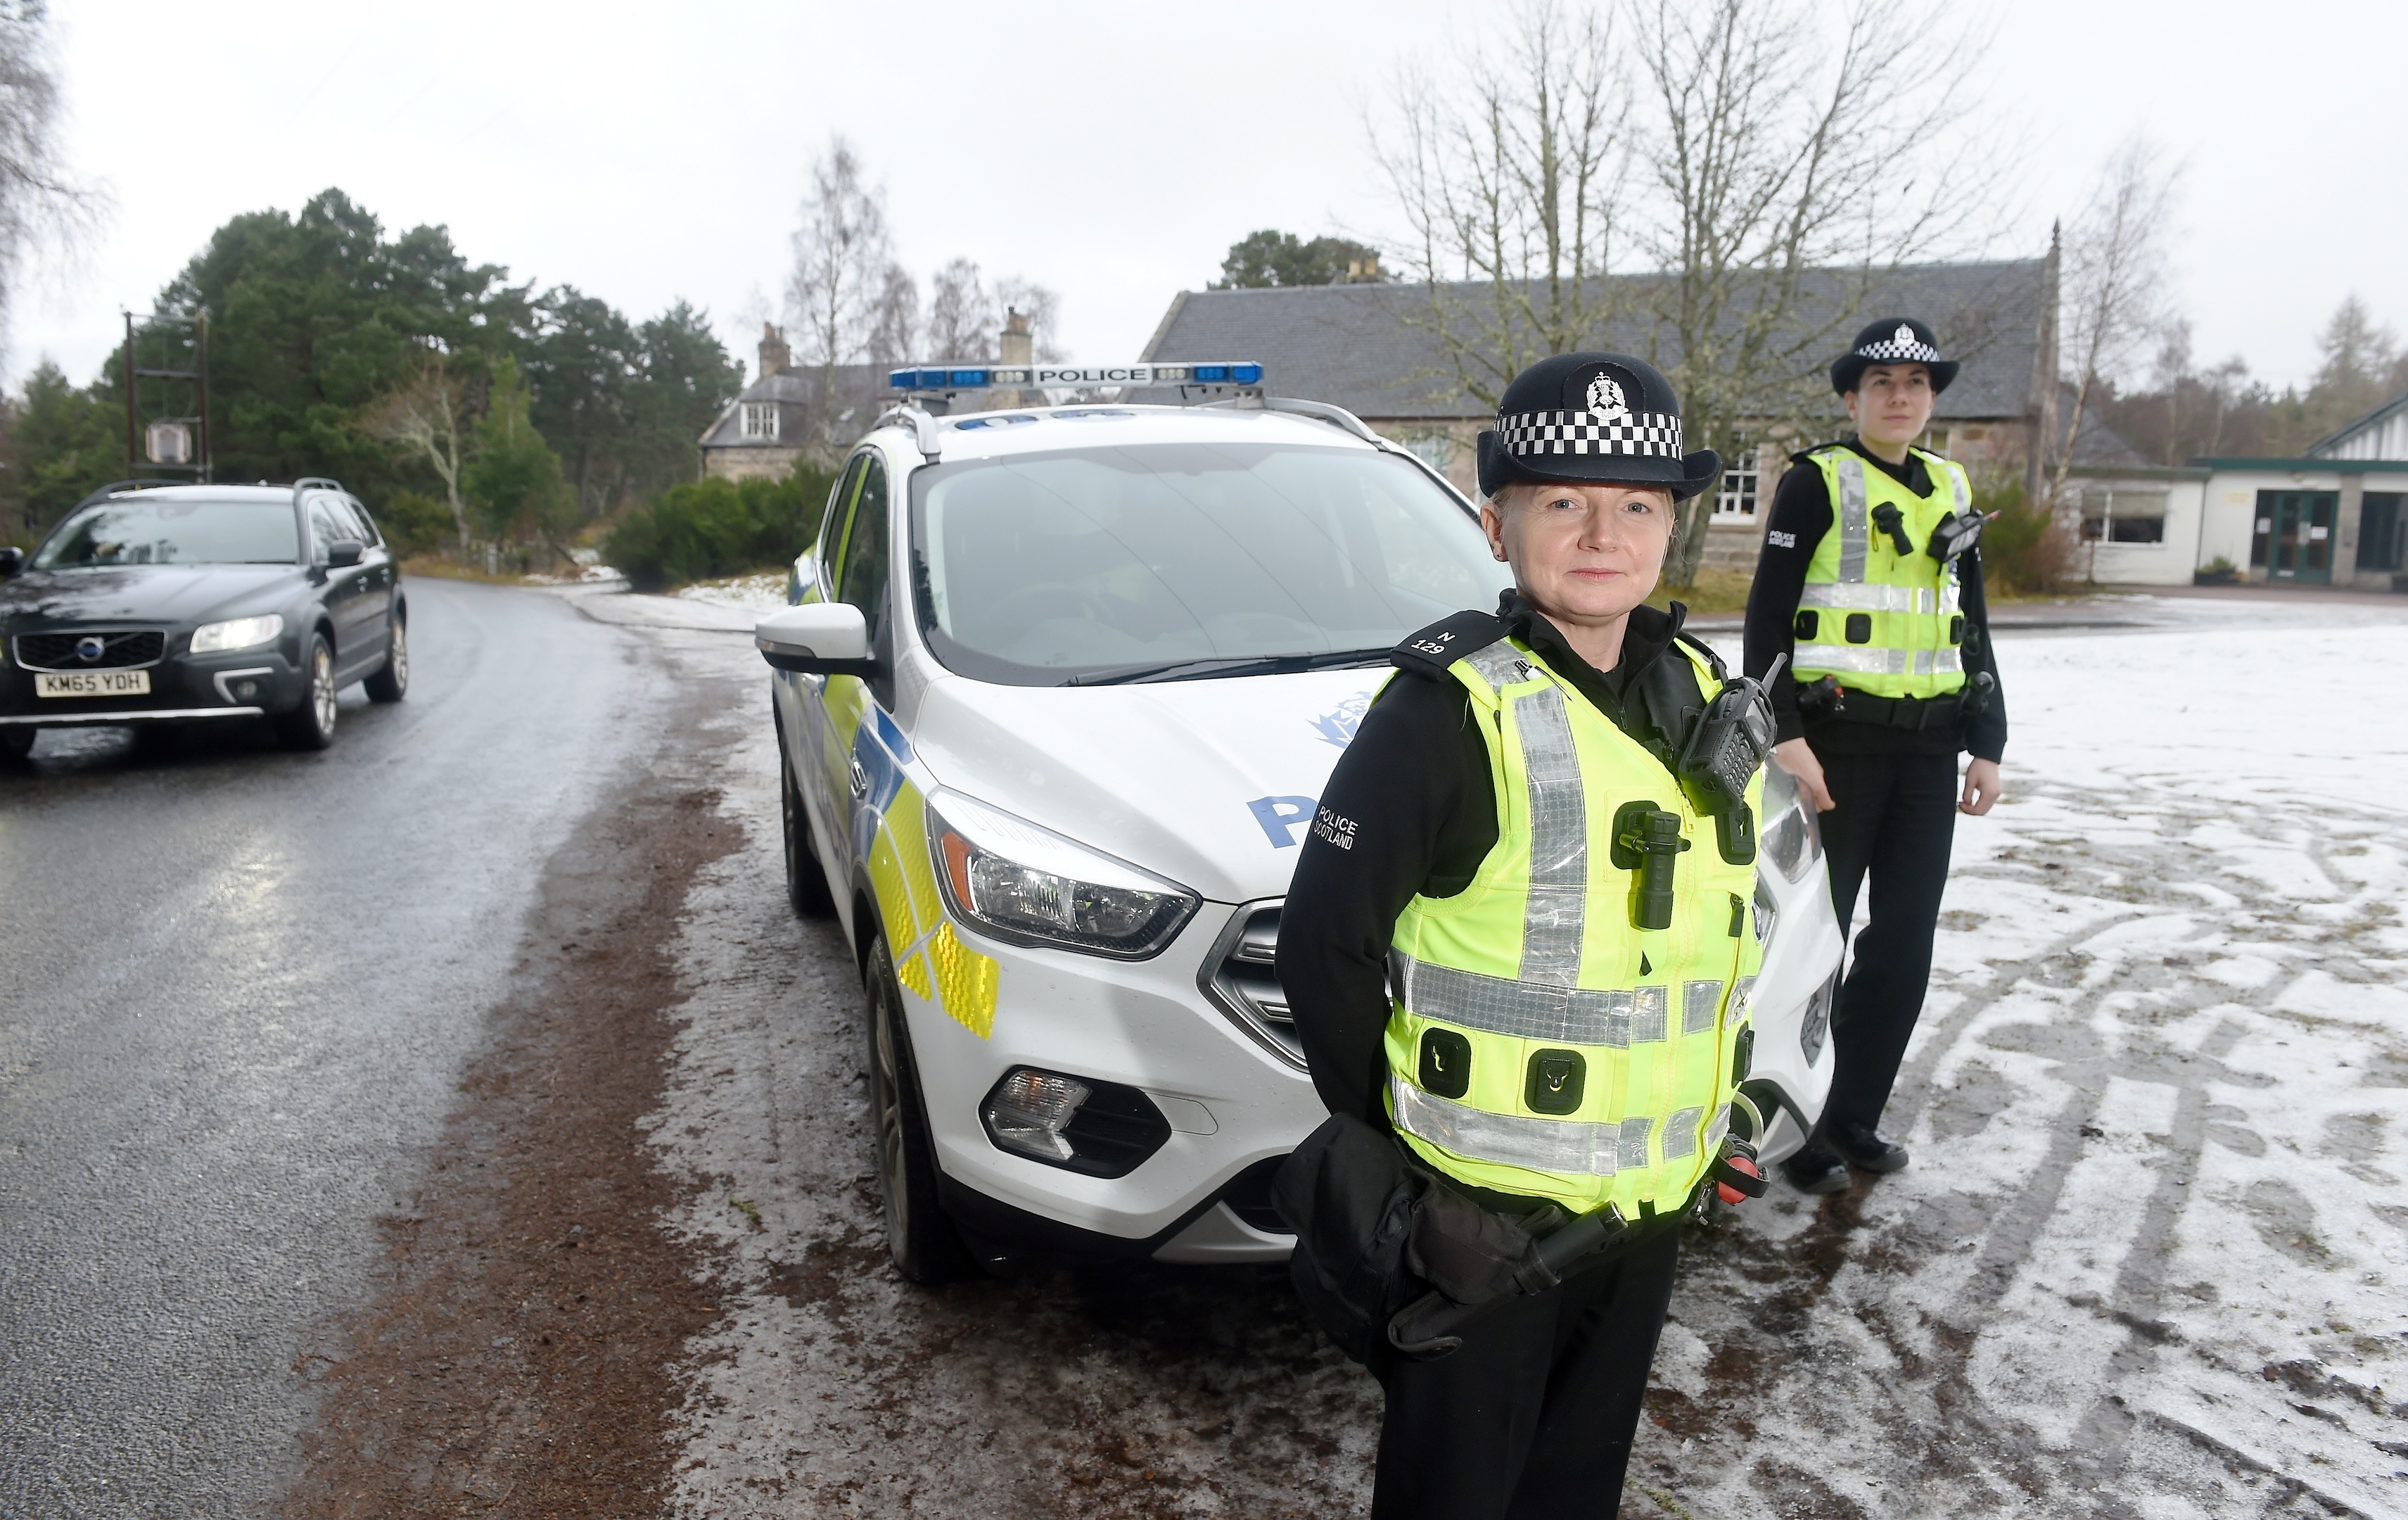 Constables Sharon Strang (left) and Clare Maclennan of Police Scotland outside Abernethy Primary School where they are monitoring traffic and drivers in a bid to improve safety. Picture by Sandy McCook.